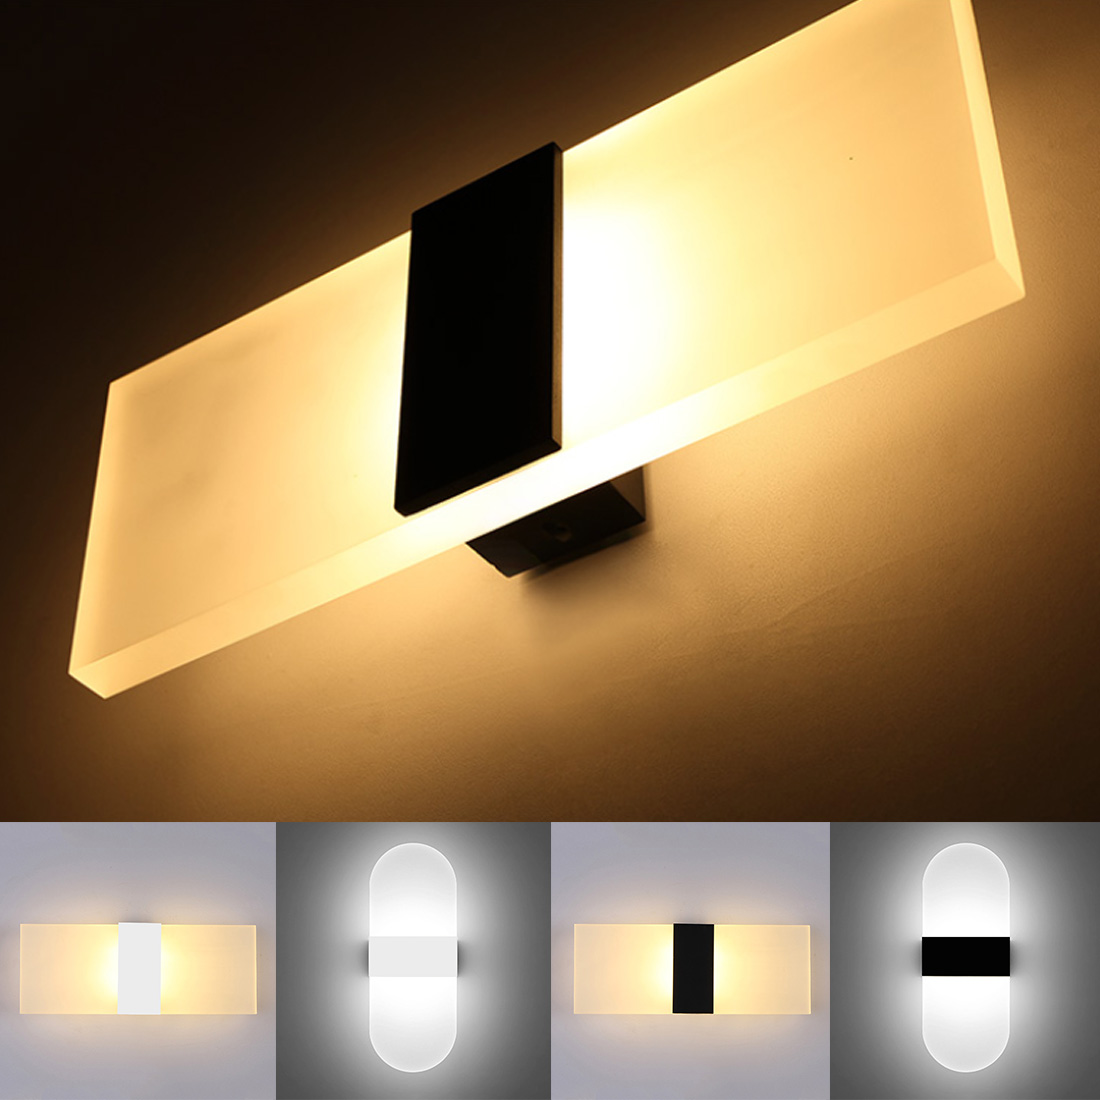 3W Led Acrylic Wall Lamp AC85-265V Wall Mounted Sconce Lights Lamp Decorative Living Room Bedroom Corridor Wall Lights